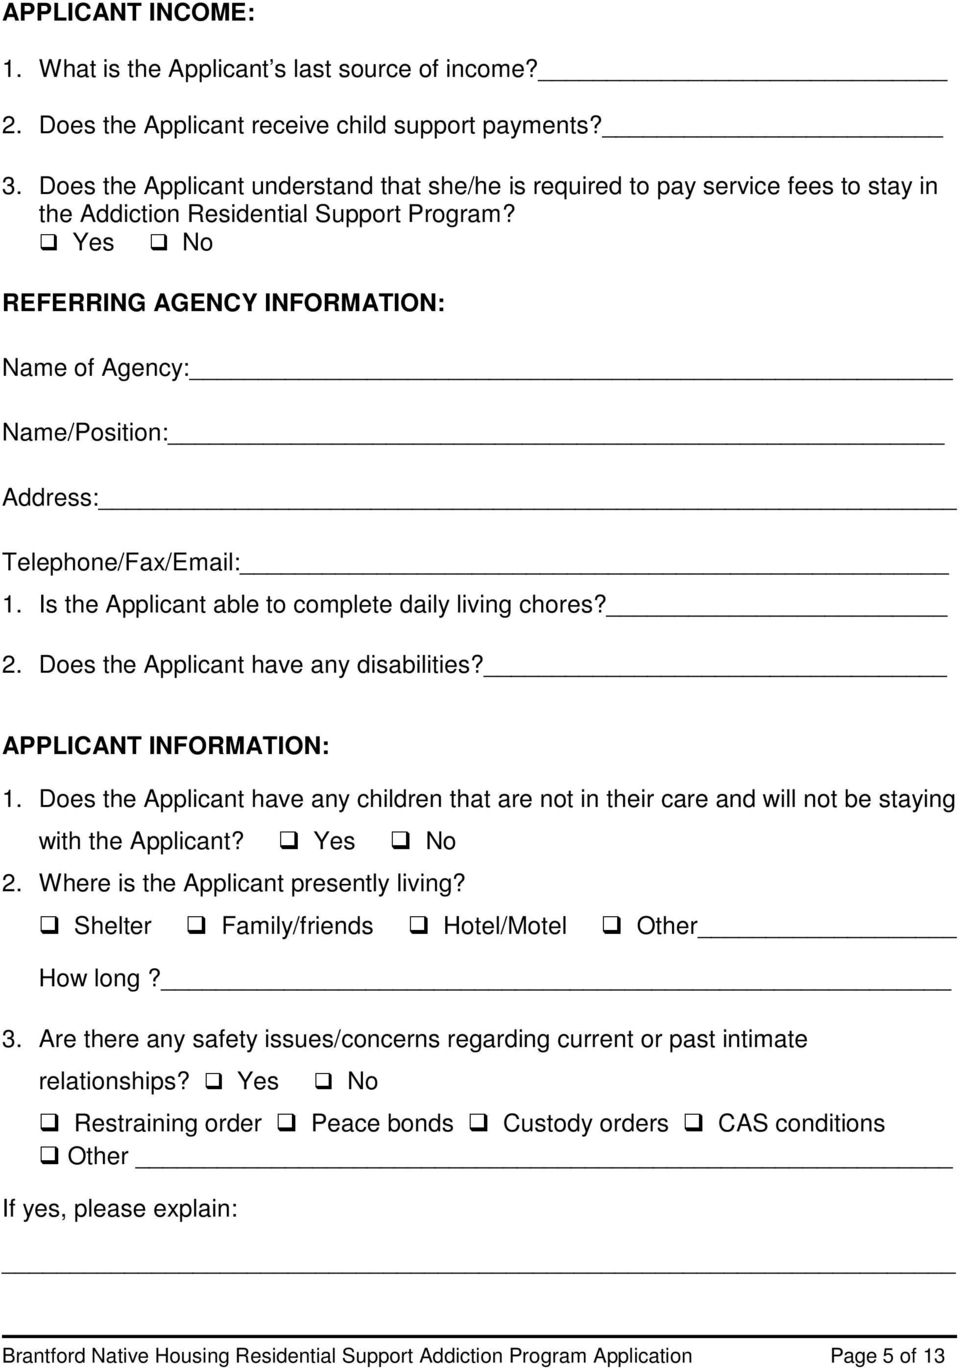 Yes No REFERRING AGENCY INFORMATION: Name of Agency: Name/Position: Address: Telephone/Fax/Email: 1. Is the Applicant able to complete daily living chores? 2. Does the Applicant have any disabilities?